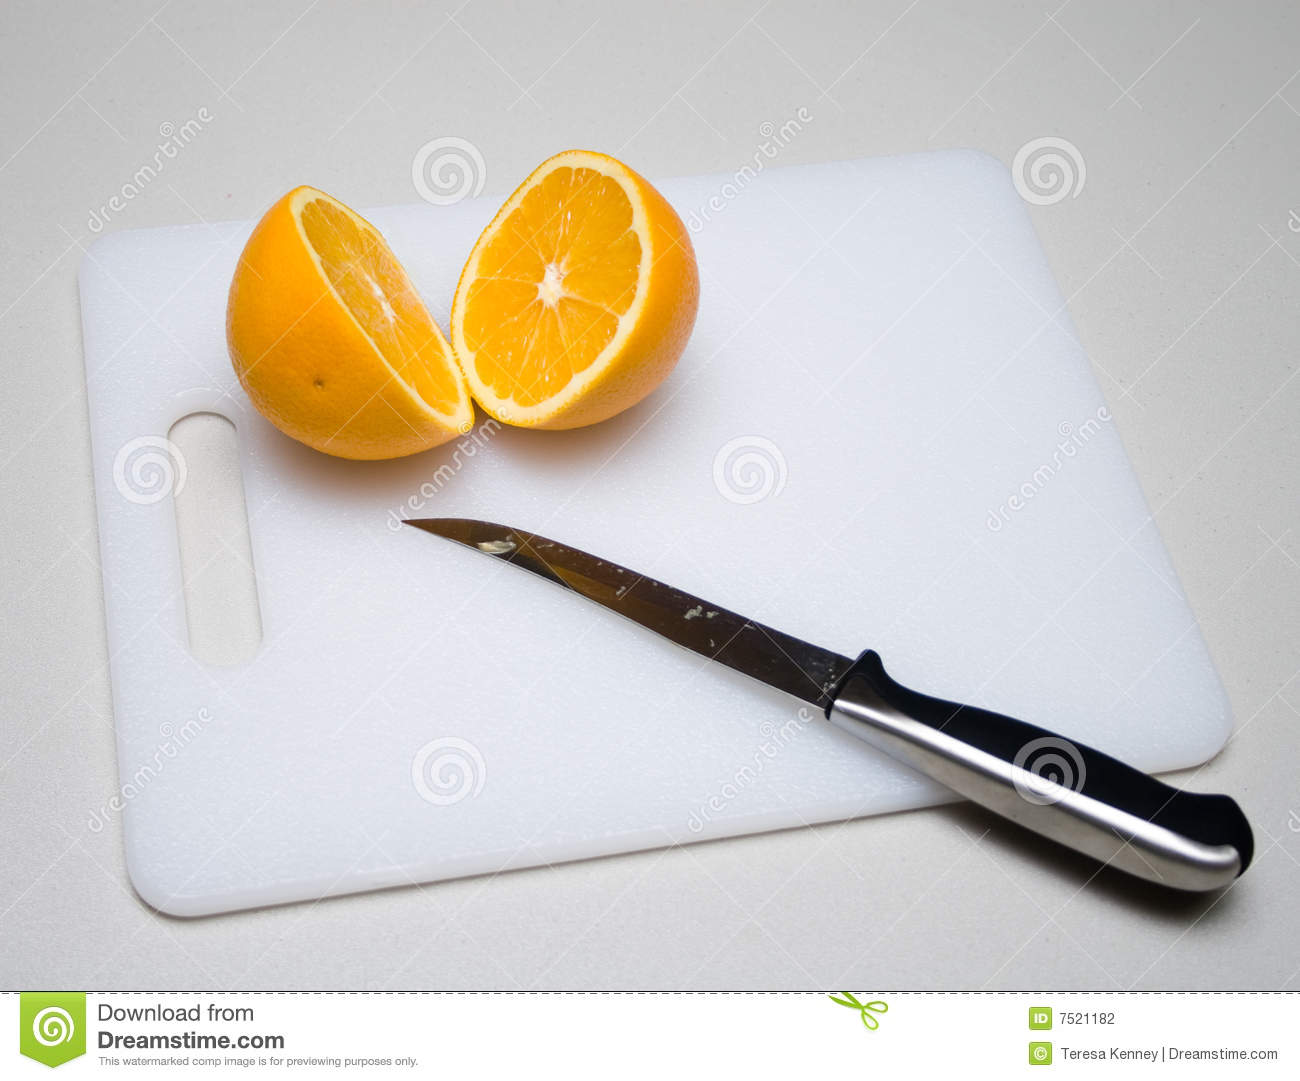 how to cut orange for beer